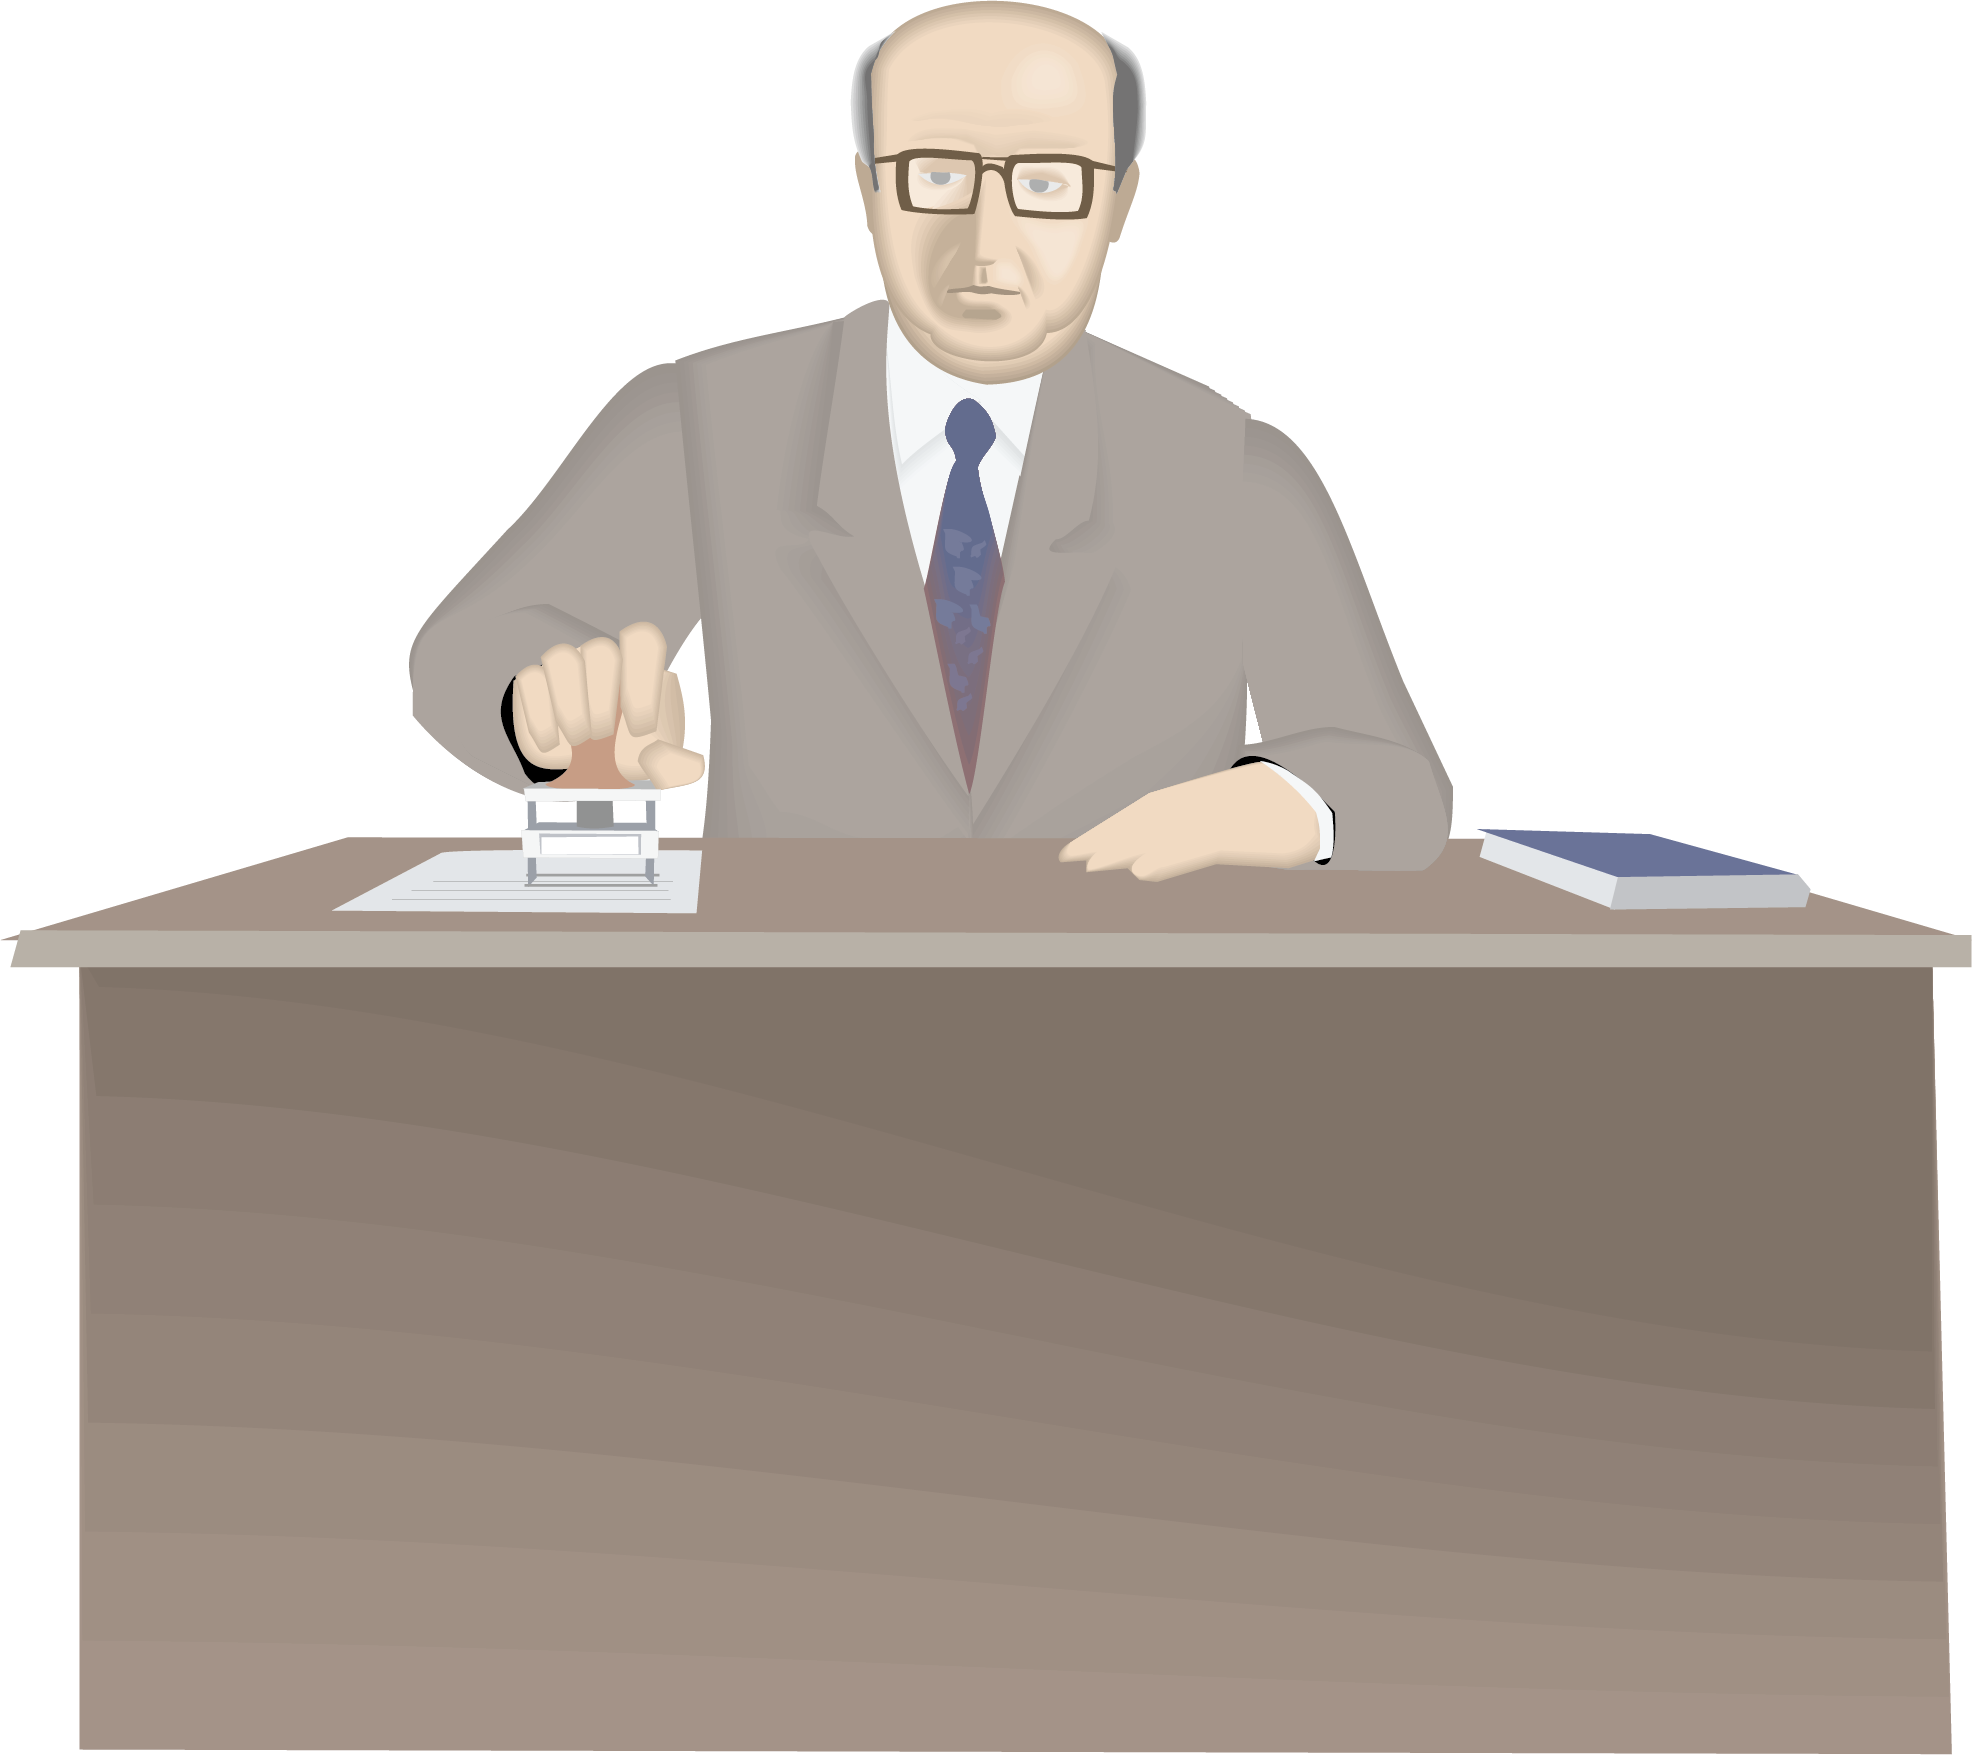 Manager clipart building manager. Cartoon clip art at